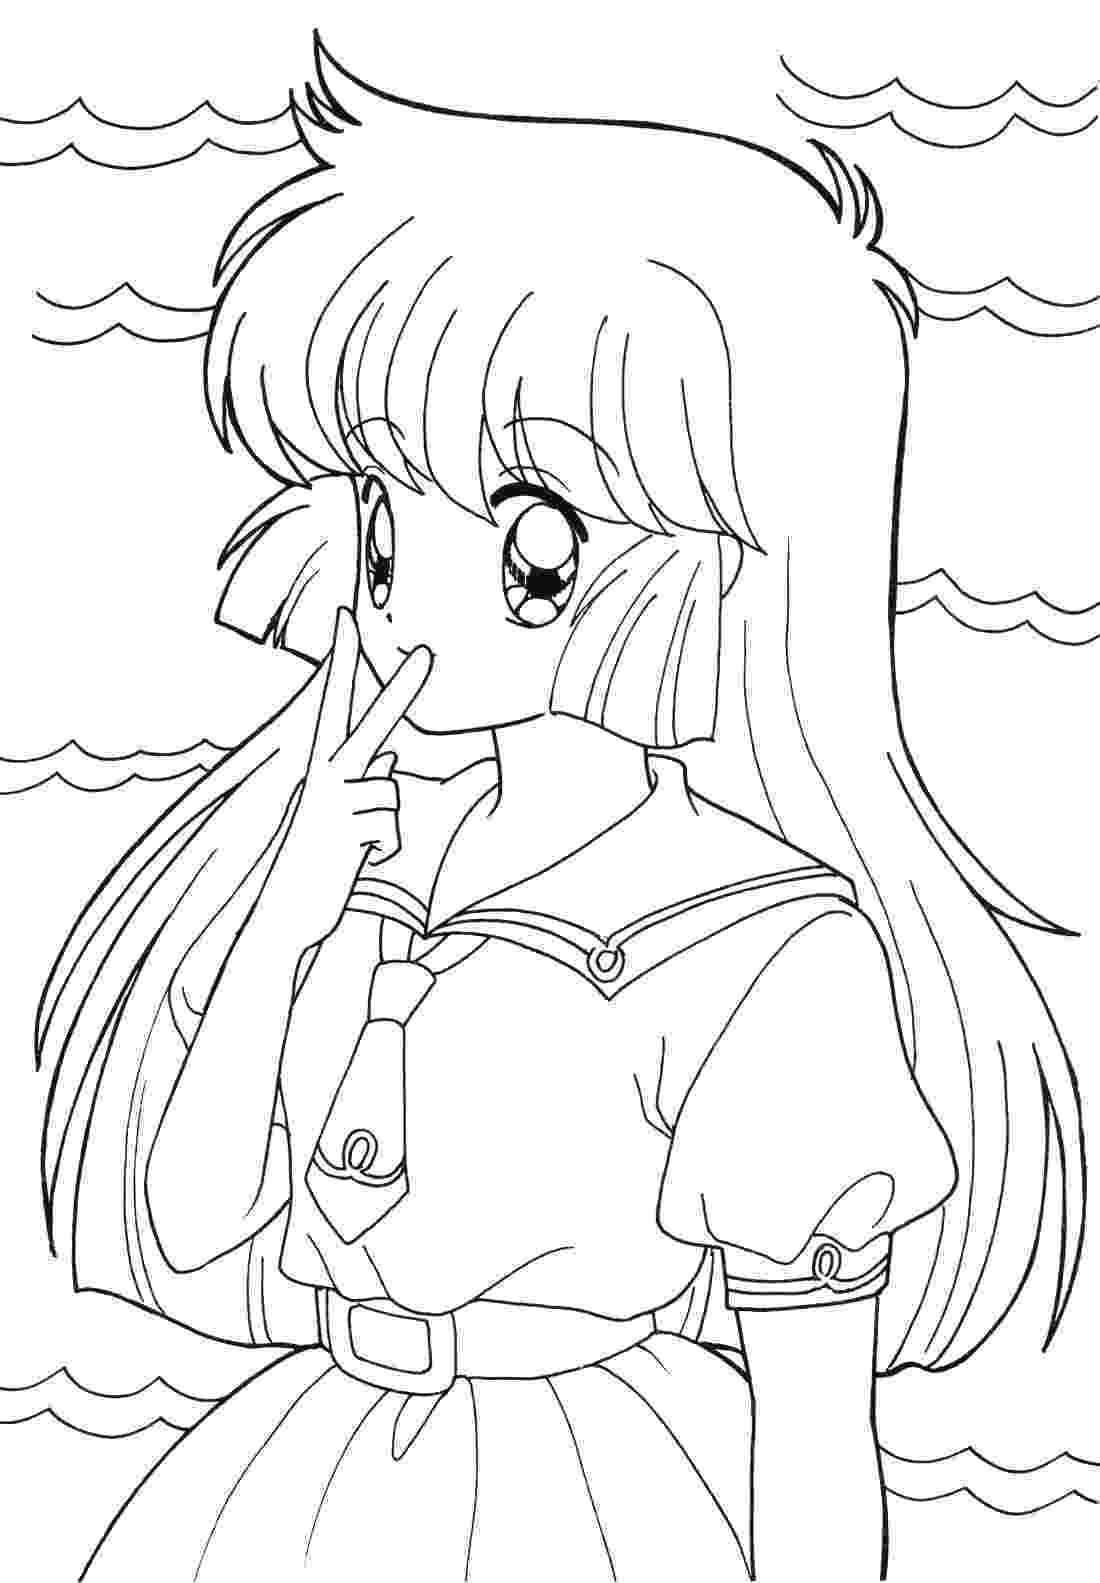 anime colors anime coloring pages best coloring pages for kids colors anime 1 2